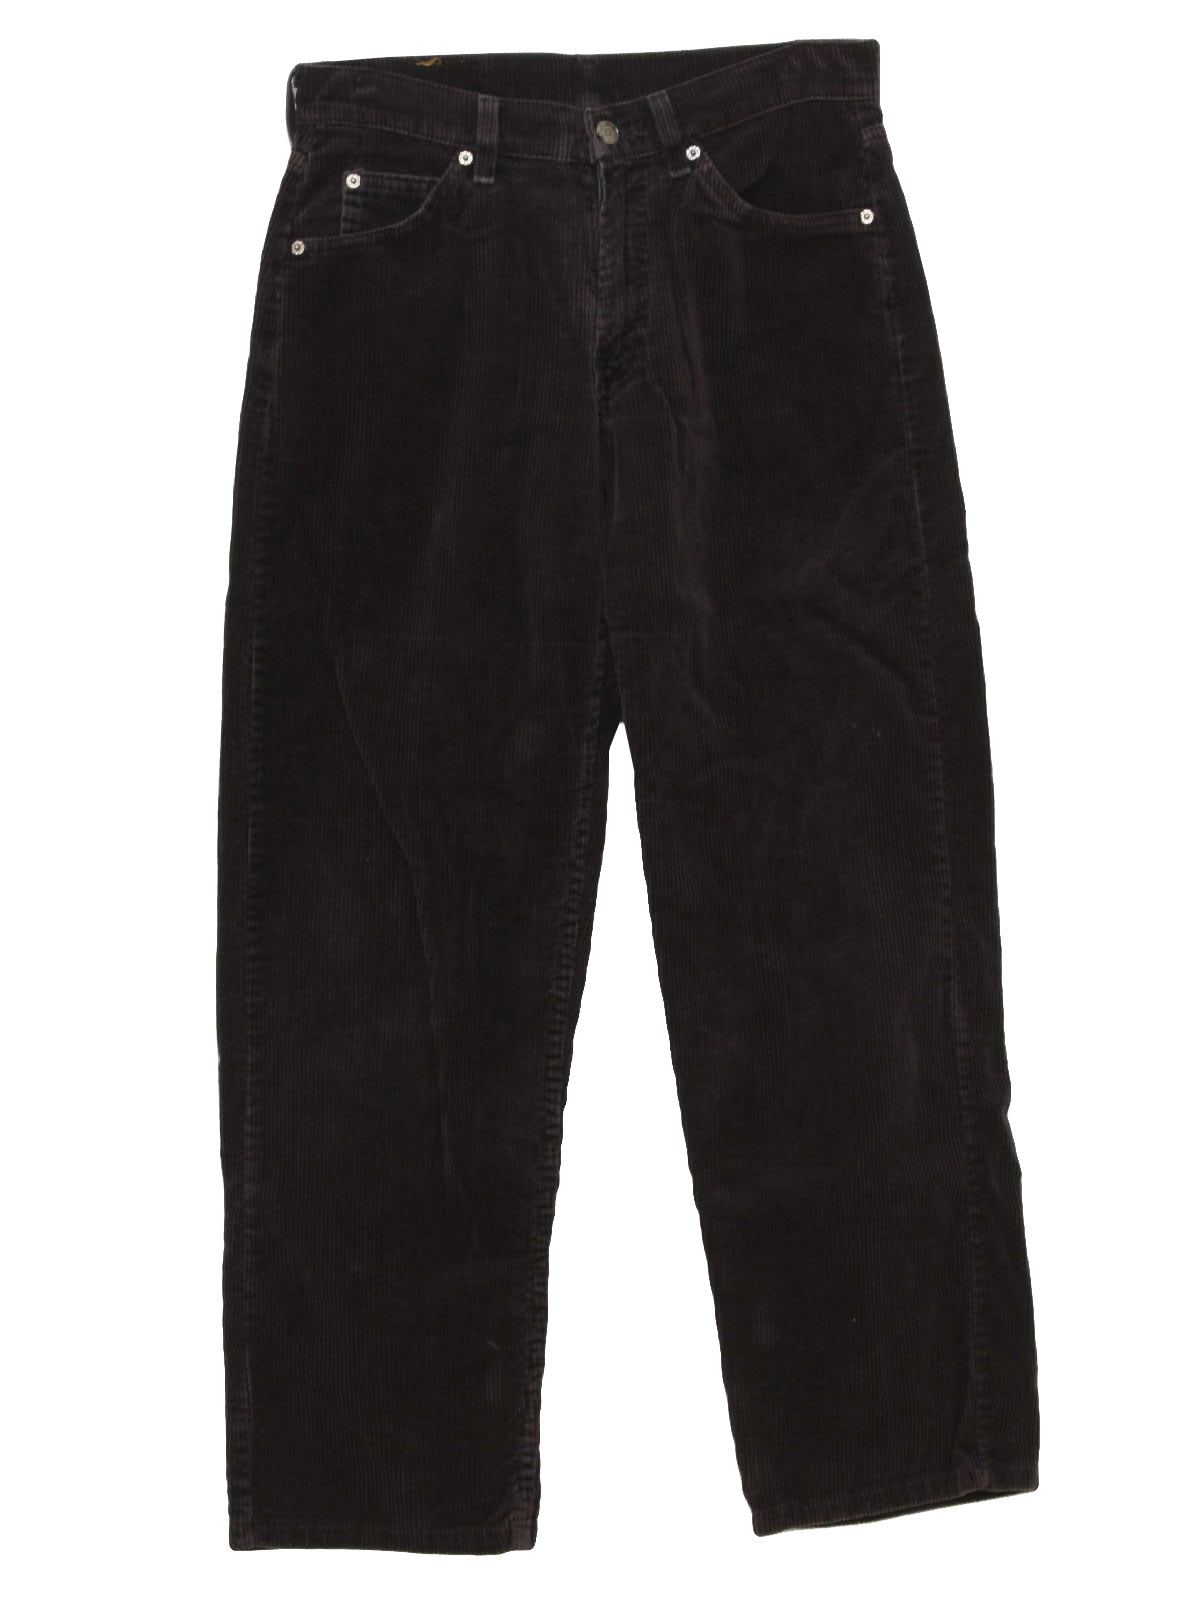 Retro 1990's Pants (Levis) : 90s -Levis- Mens black cotton ...